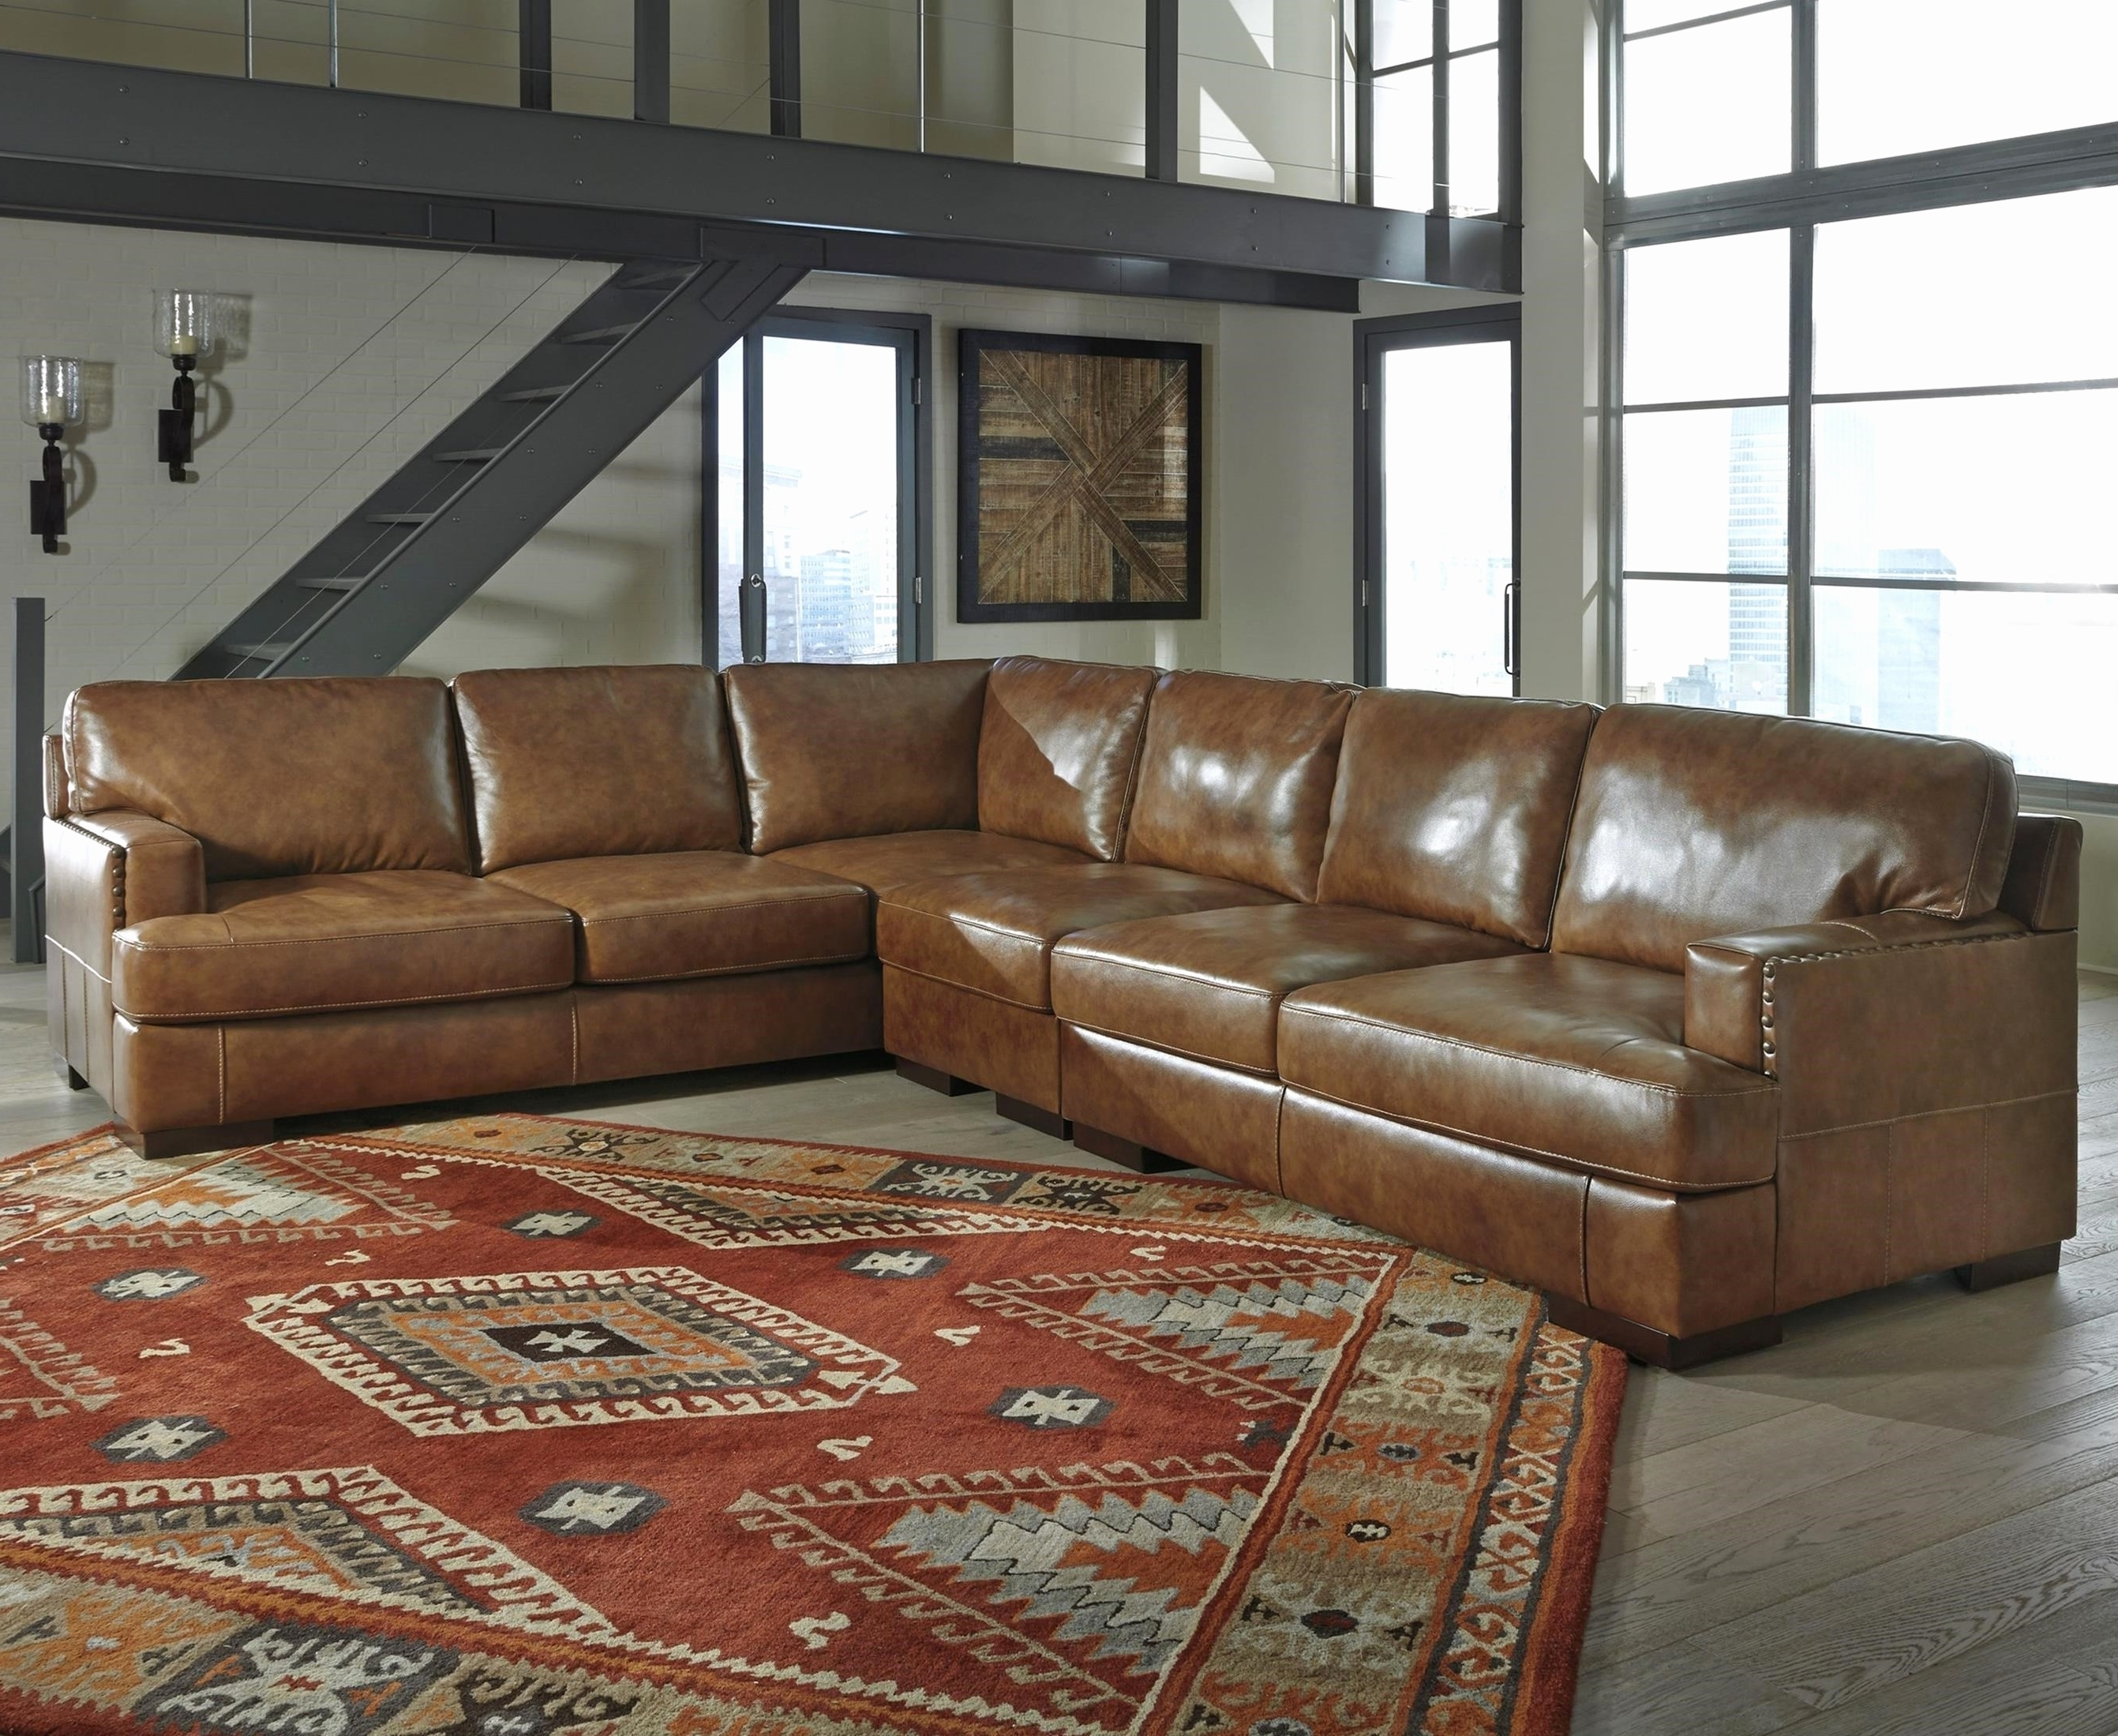 Well Liked Grand Furniture Sectional Sofas Regarding Lovely 3 Piece Corner Sectional Sofa 2018 – Couches And Sofas Ideas (View 11 of 20)